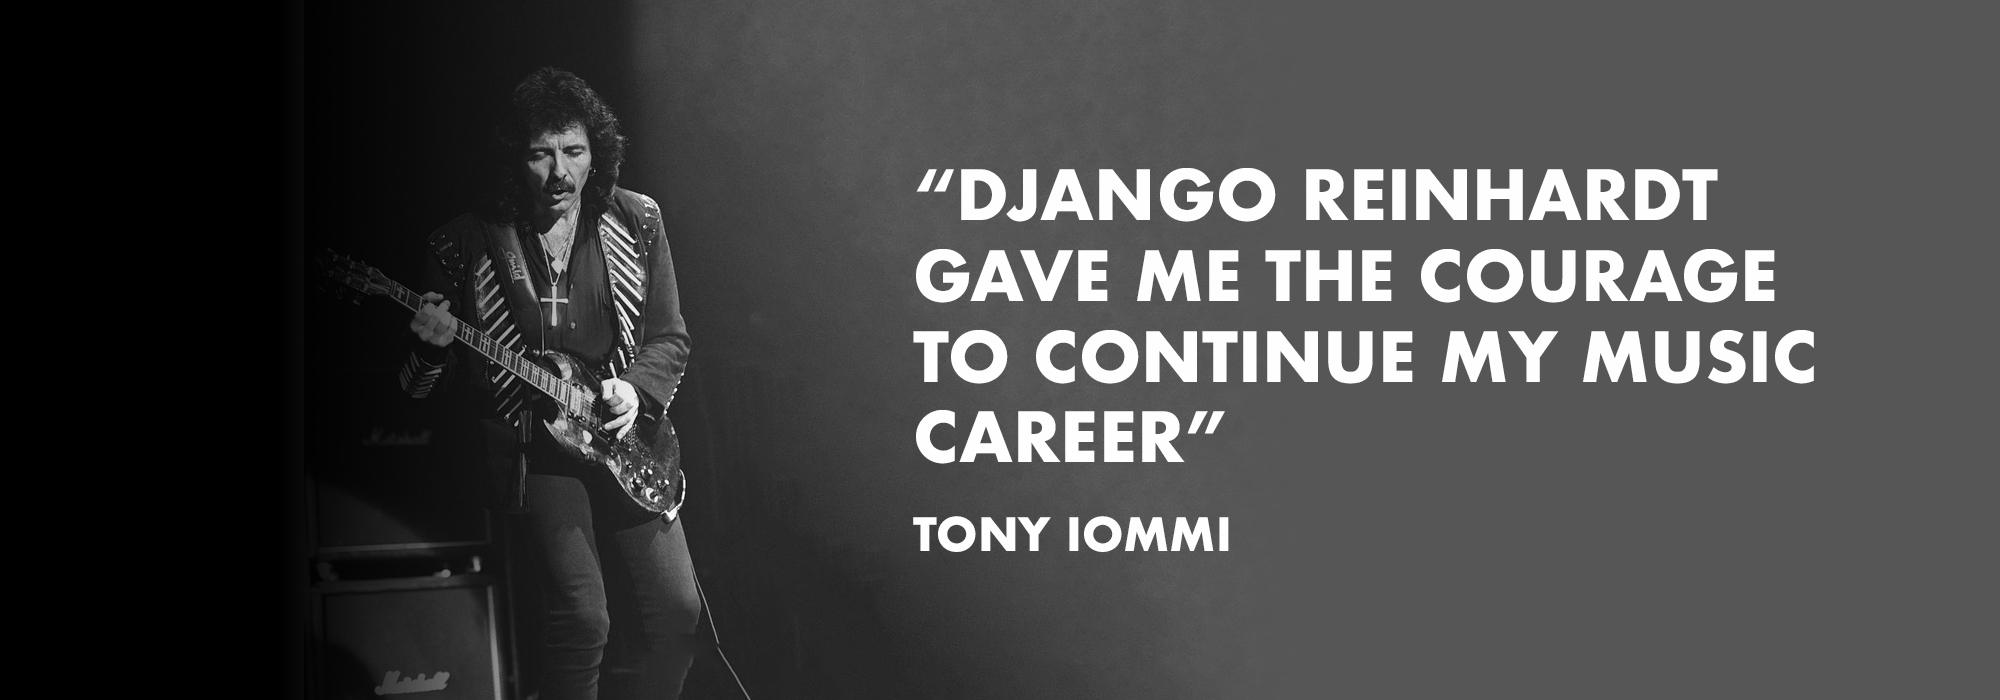 Tony Iommi on playing guitar after his accident